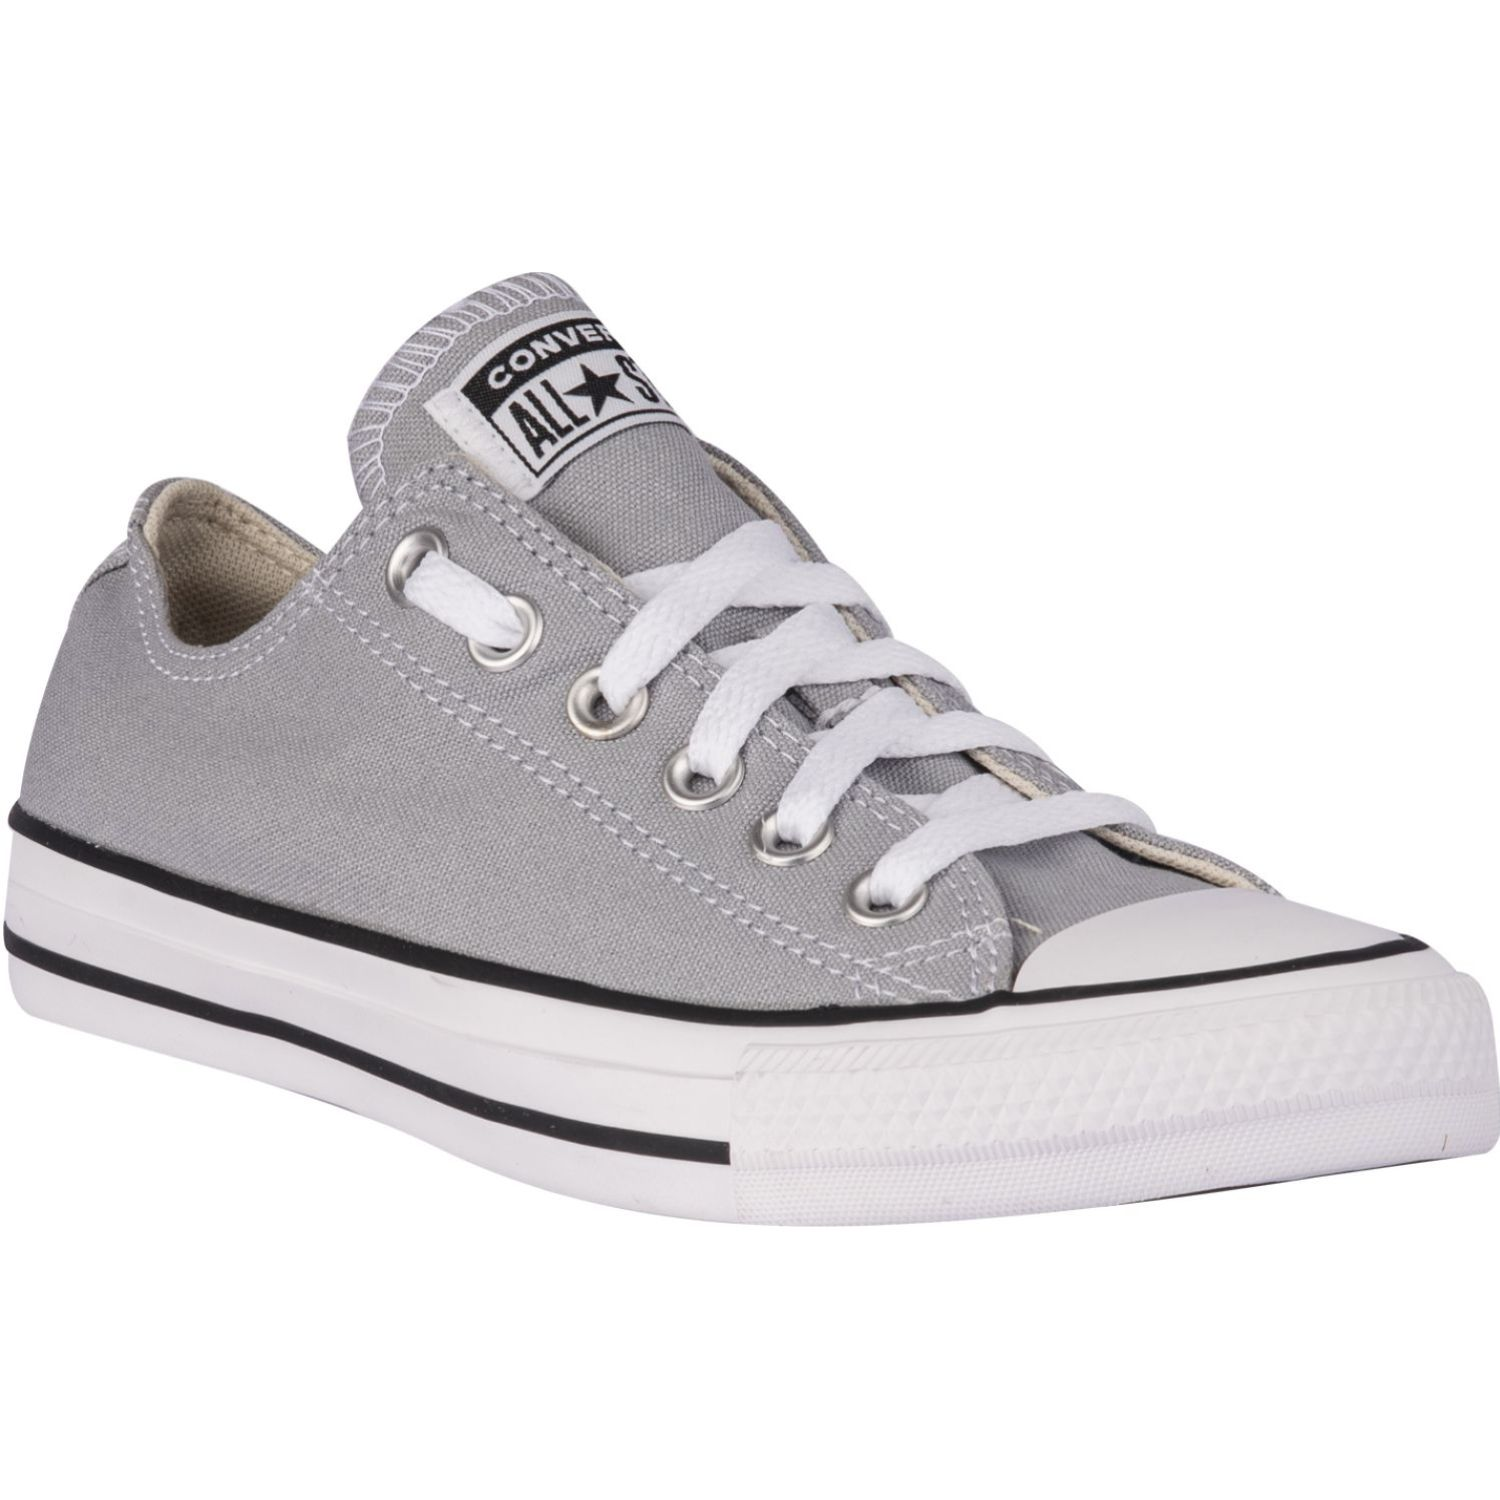 Converse Ct As Seasonal Ox Gris / blanco Zapatillas de moda